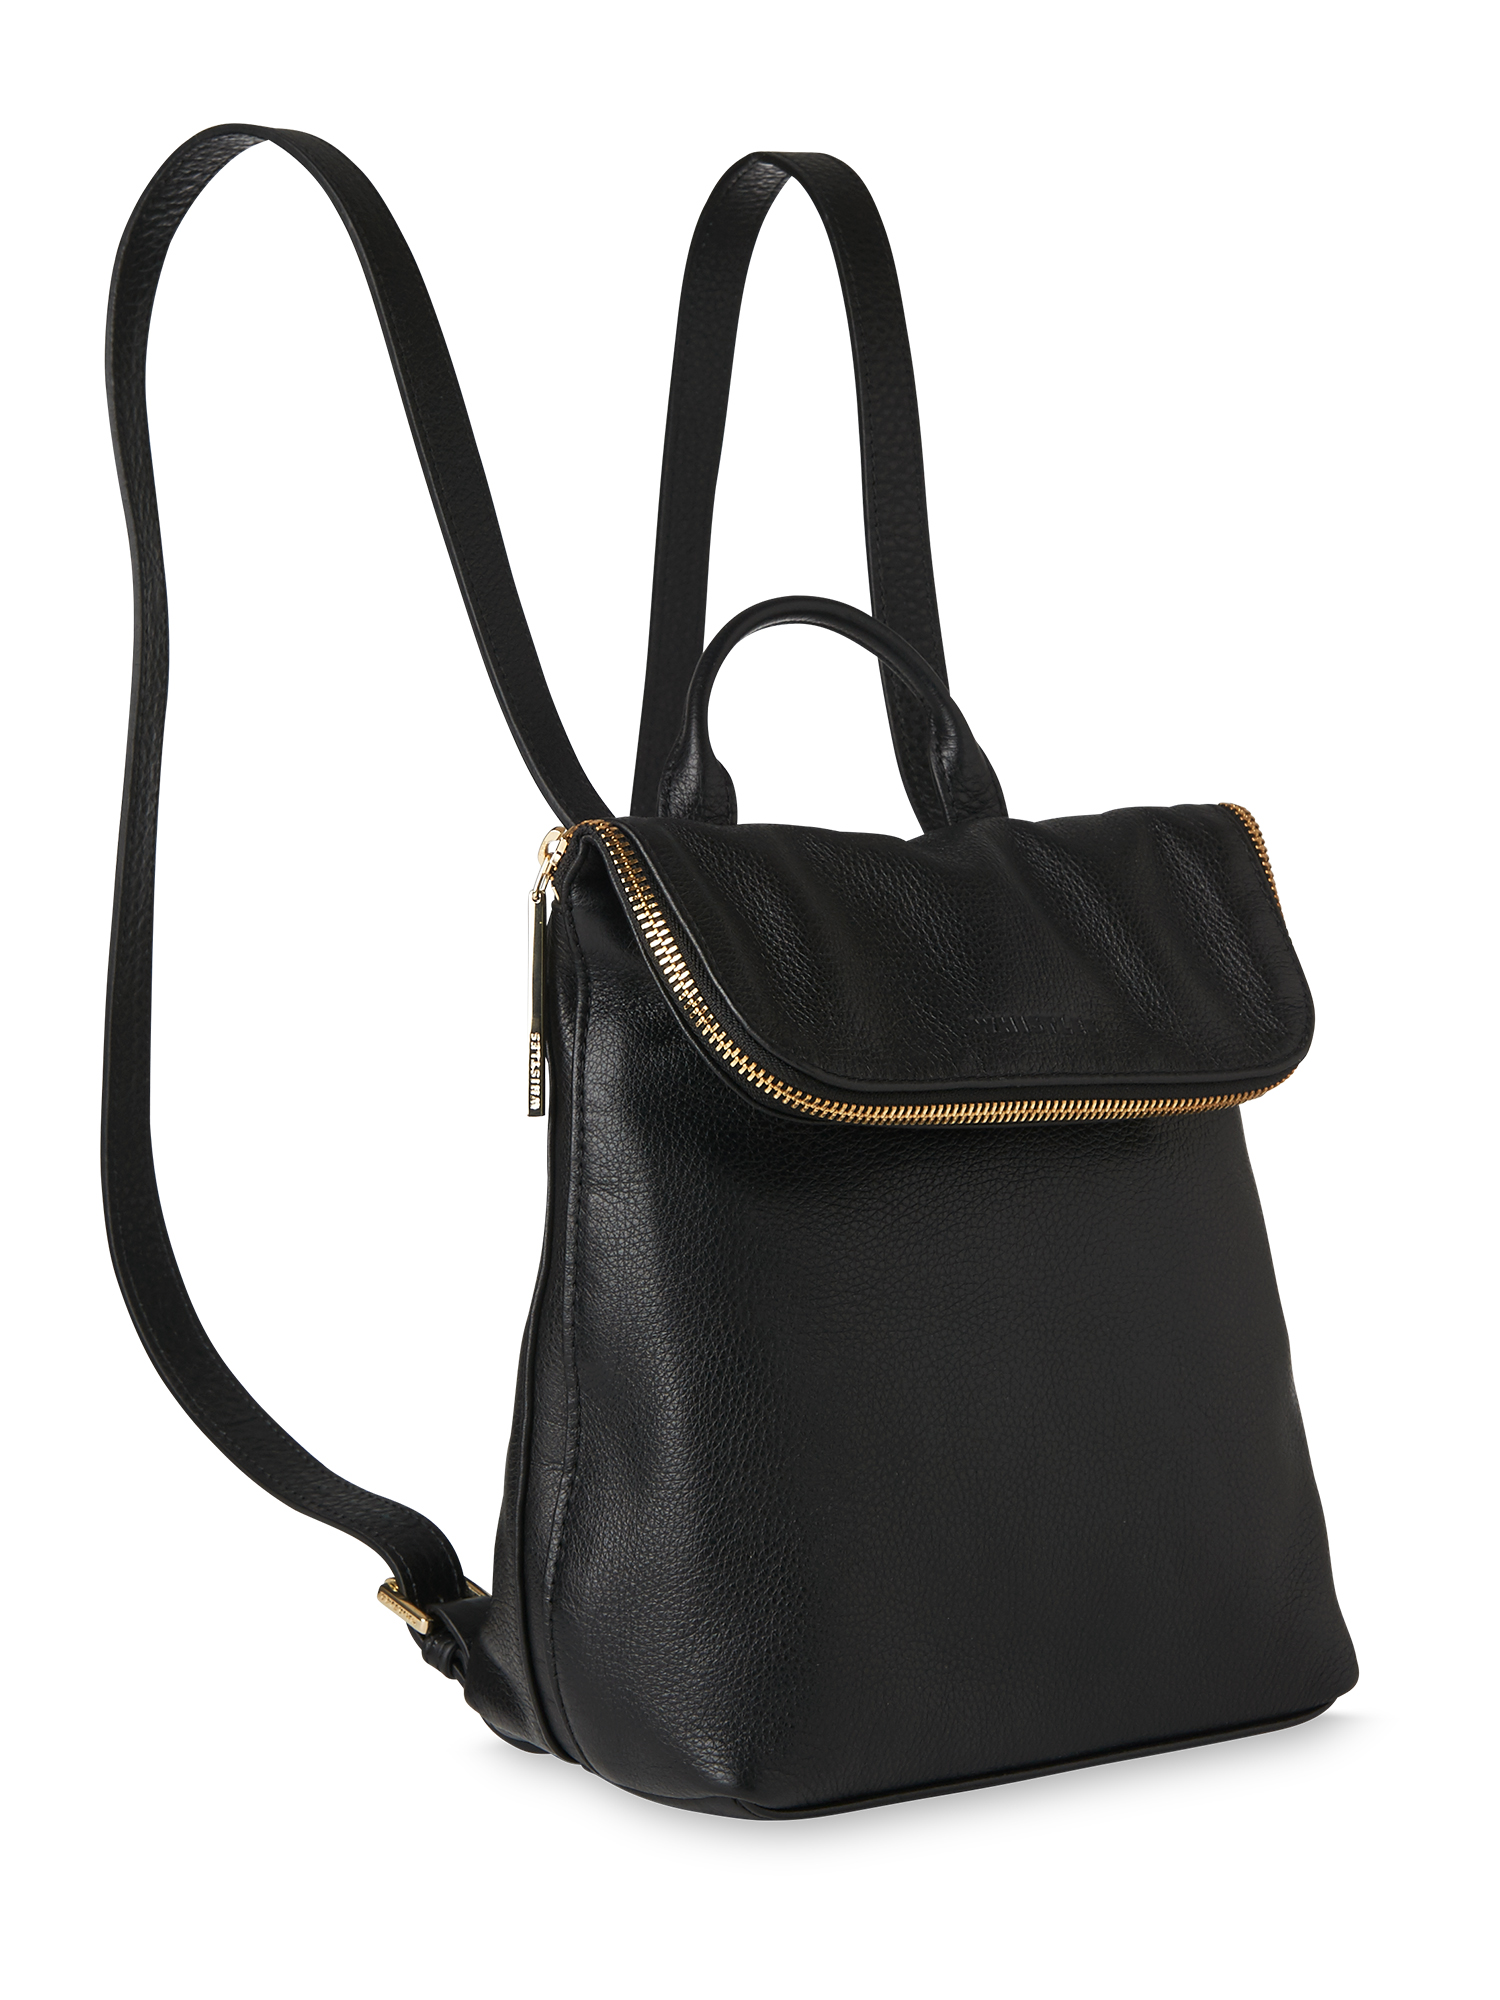 66392145754b Whistles Mini Verity Backpack | Handbags & Purses | Handbags ...